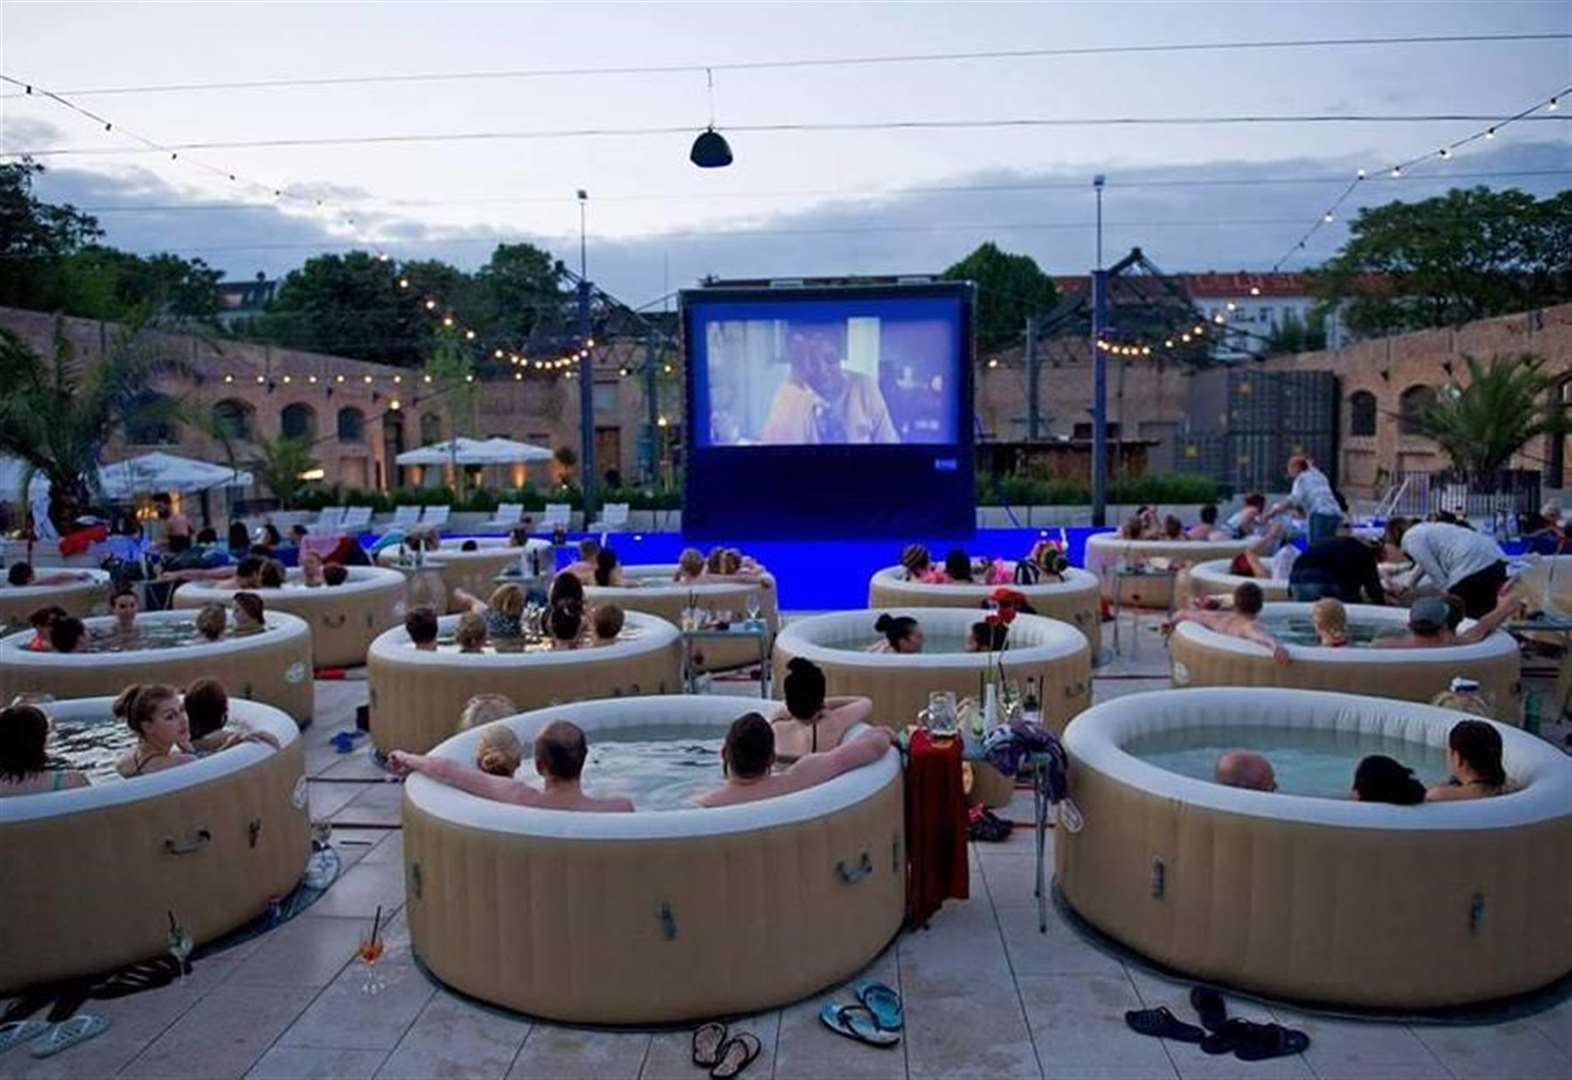 Want to dive in to a hot tub cinema showing?